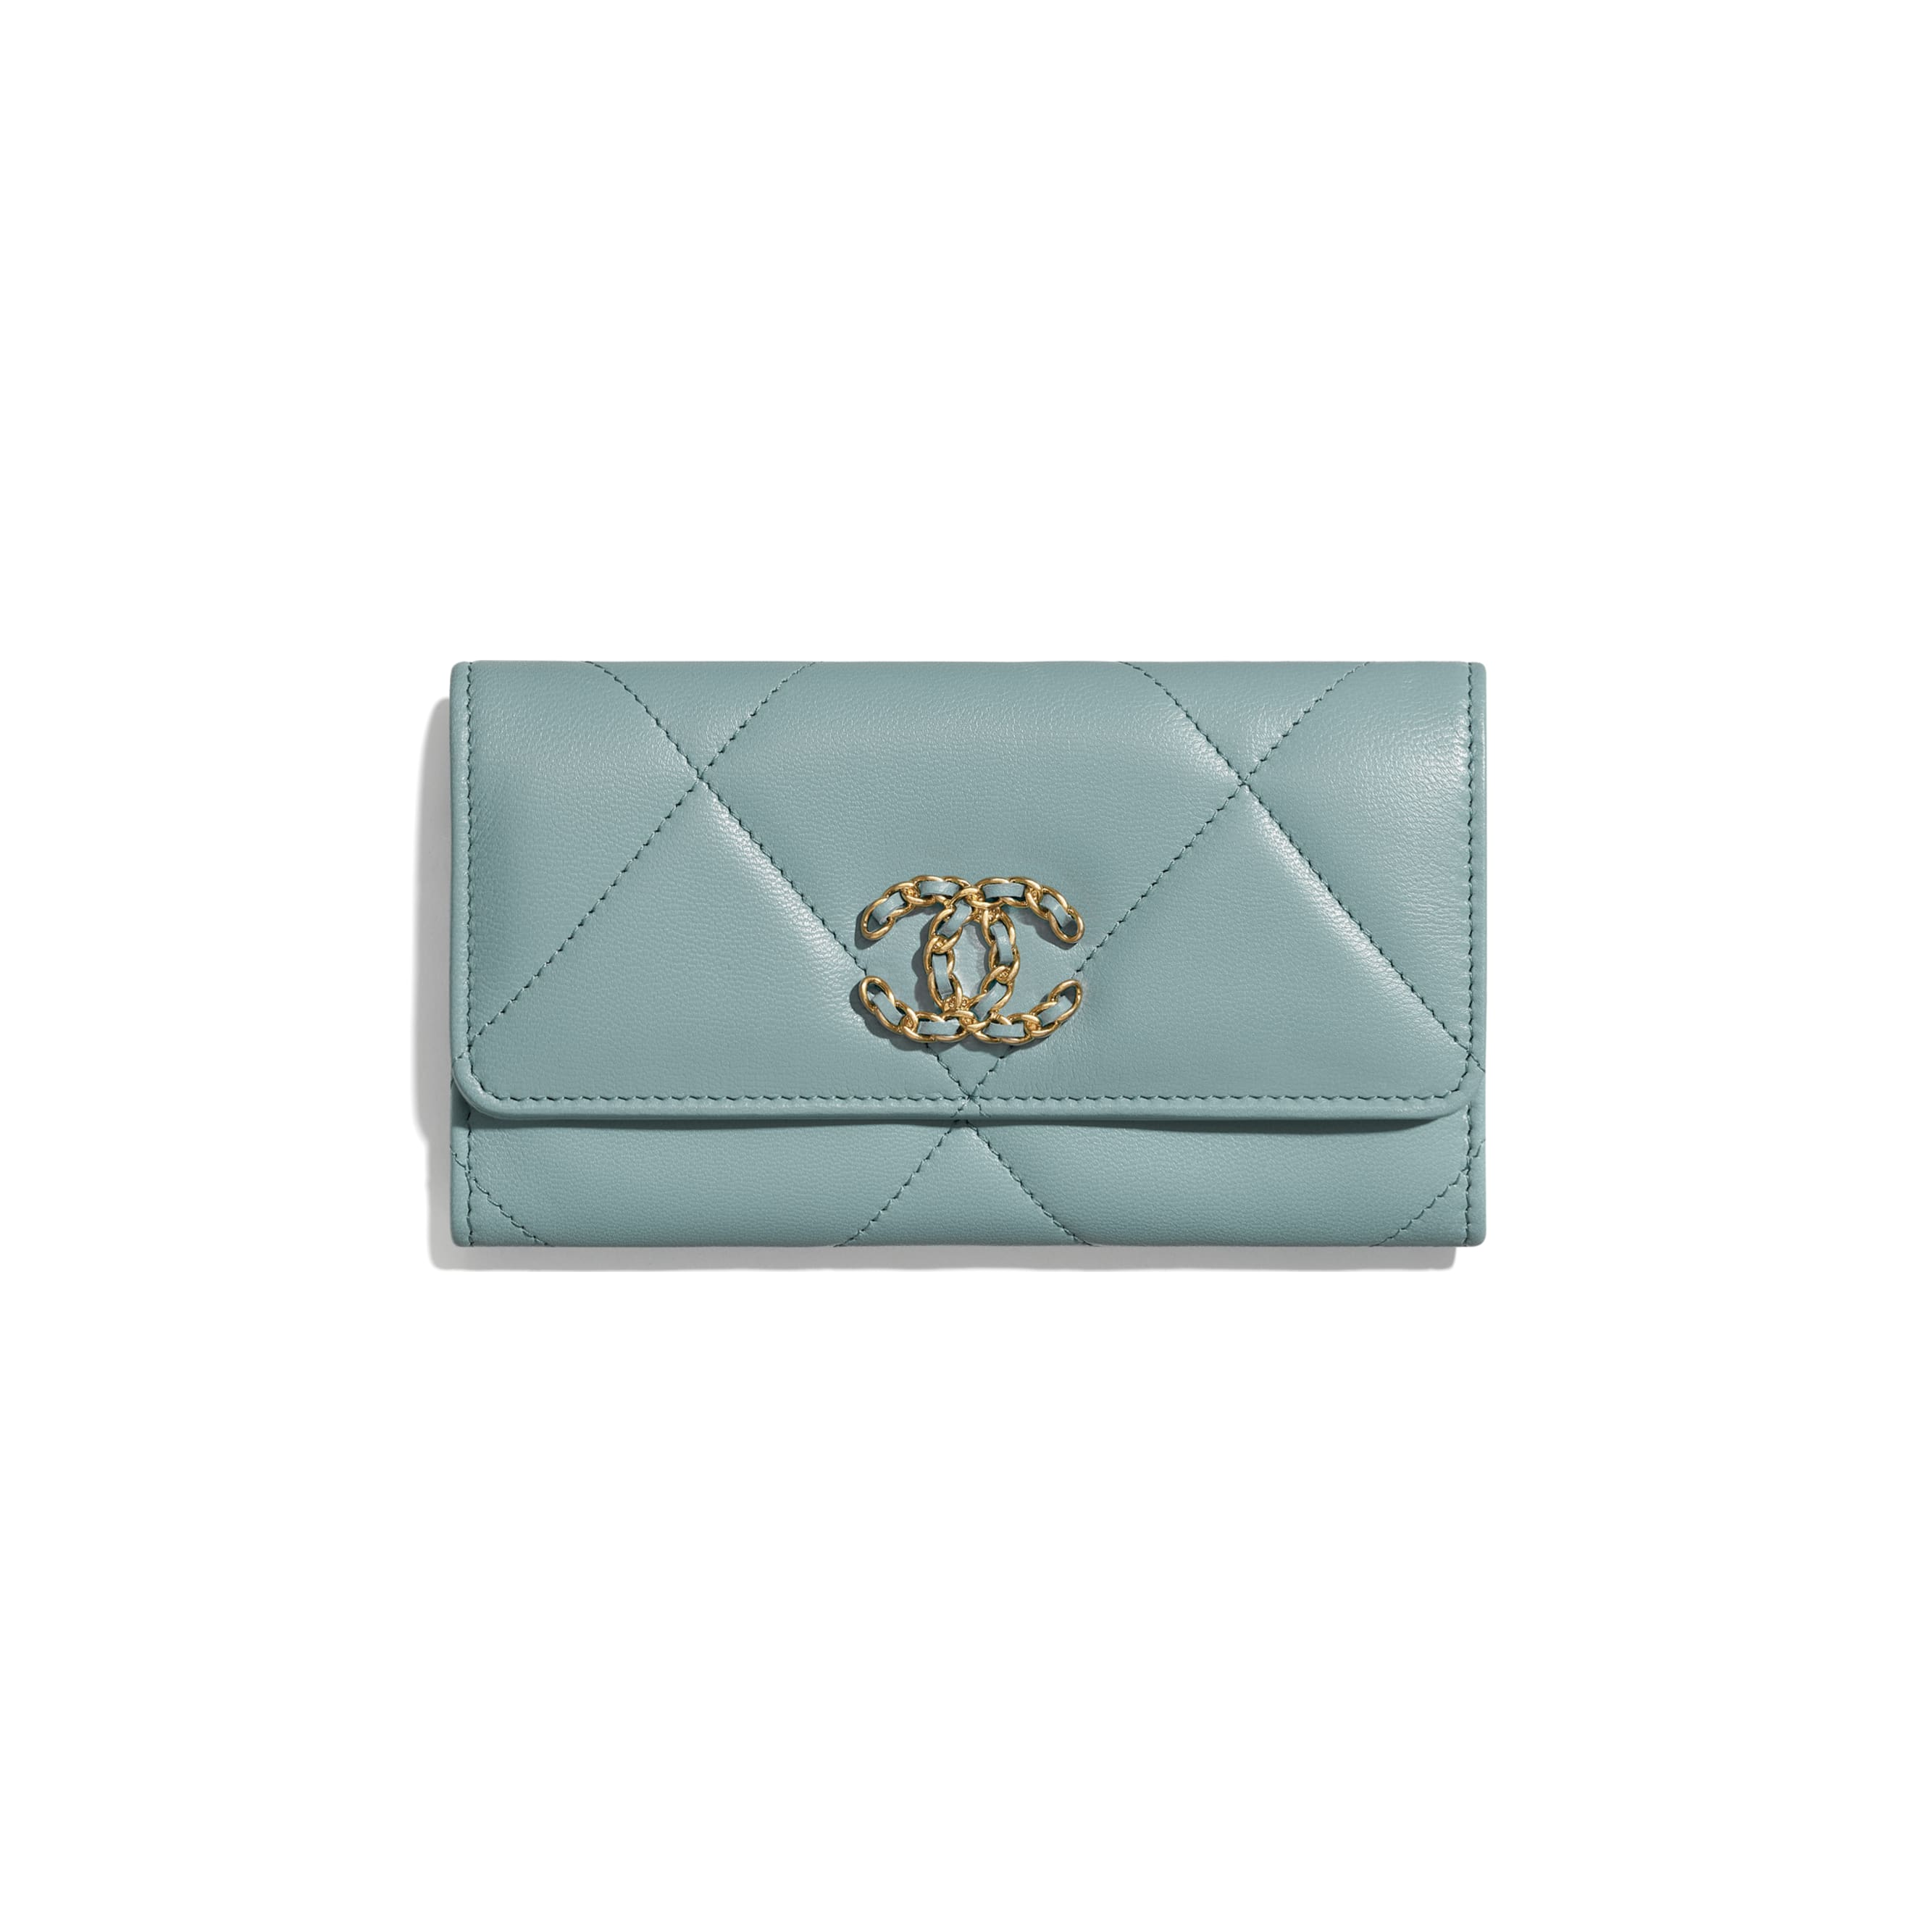 CHANEL 19 Flap Wallet - Blue - Shiny Goatskin, Gold-Tone, Silver-Tone & Ruthenium-Finish Metal - CHANEL - Default view - see standard sized version